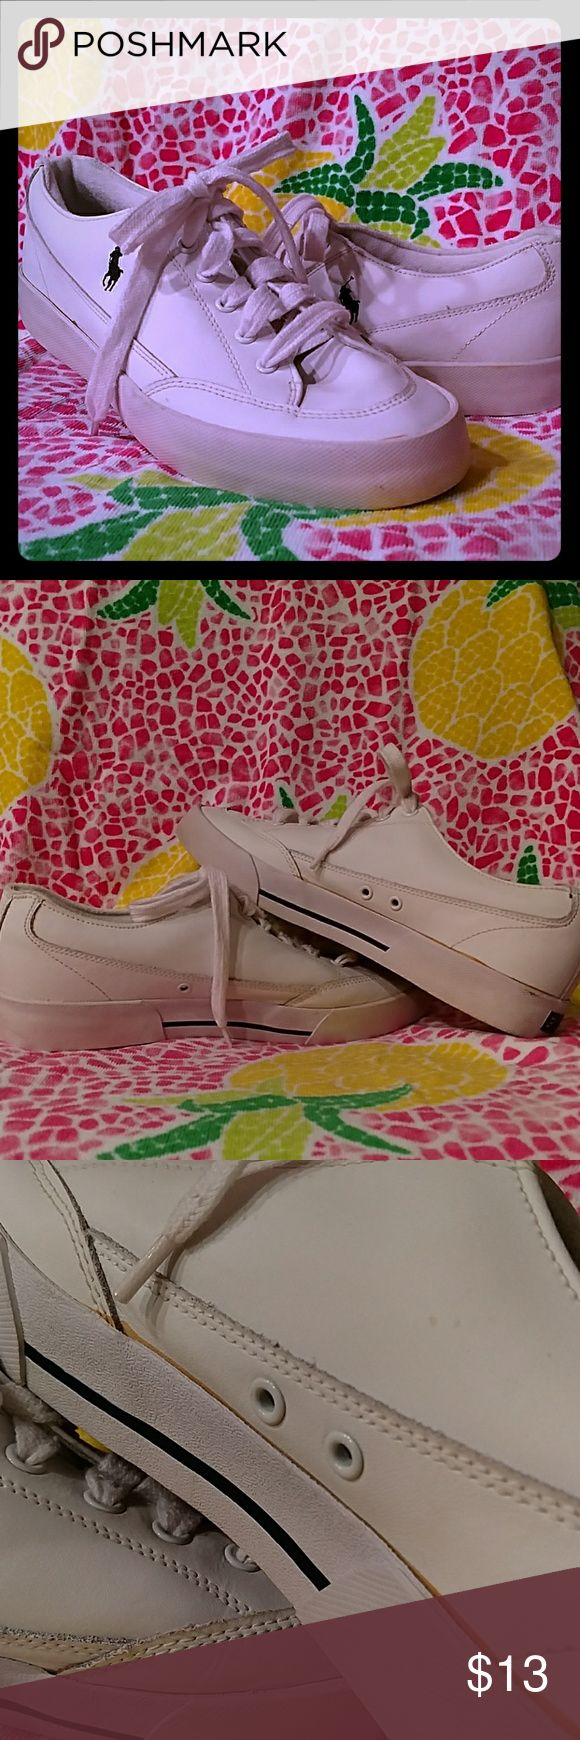 Men's Polo RL Leather Canvas Lace Up Wht 10.5 Throw Back Type of kix right here!  90s Polo Ralph Lauren leather canvas sneakers 10.5 Men's.  Solid pre-owned condition... Few marks/blemishes here and there but nothing admirers are noticing!  :)  Hit me up with additional questions!  Xo Polo Shoes Sneakers